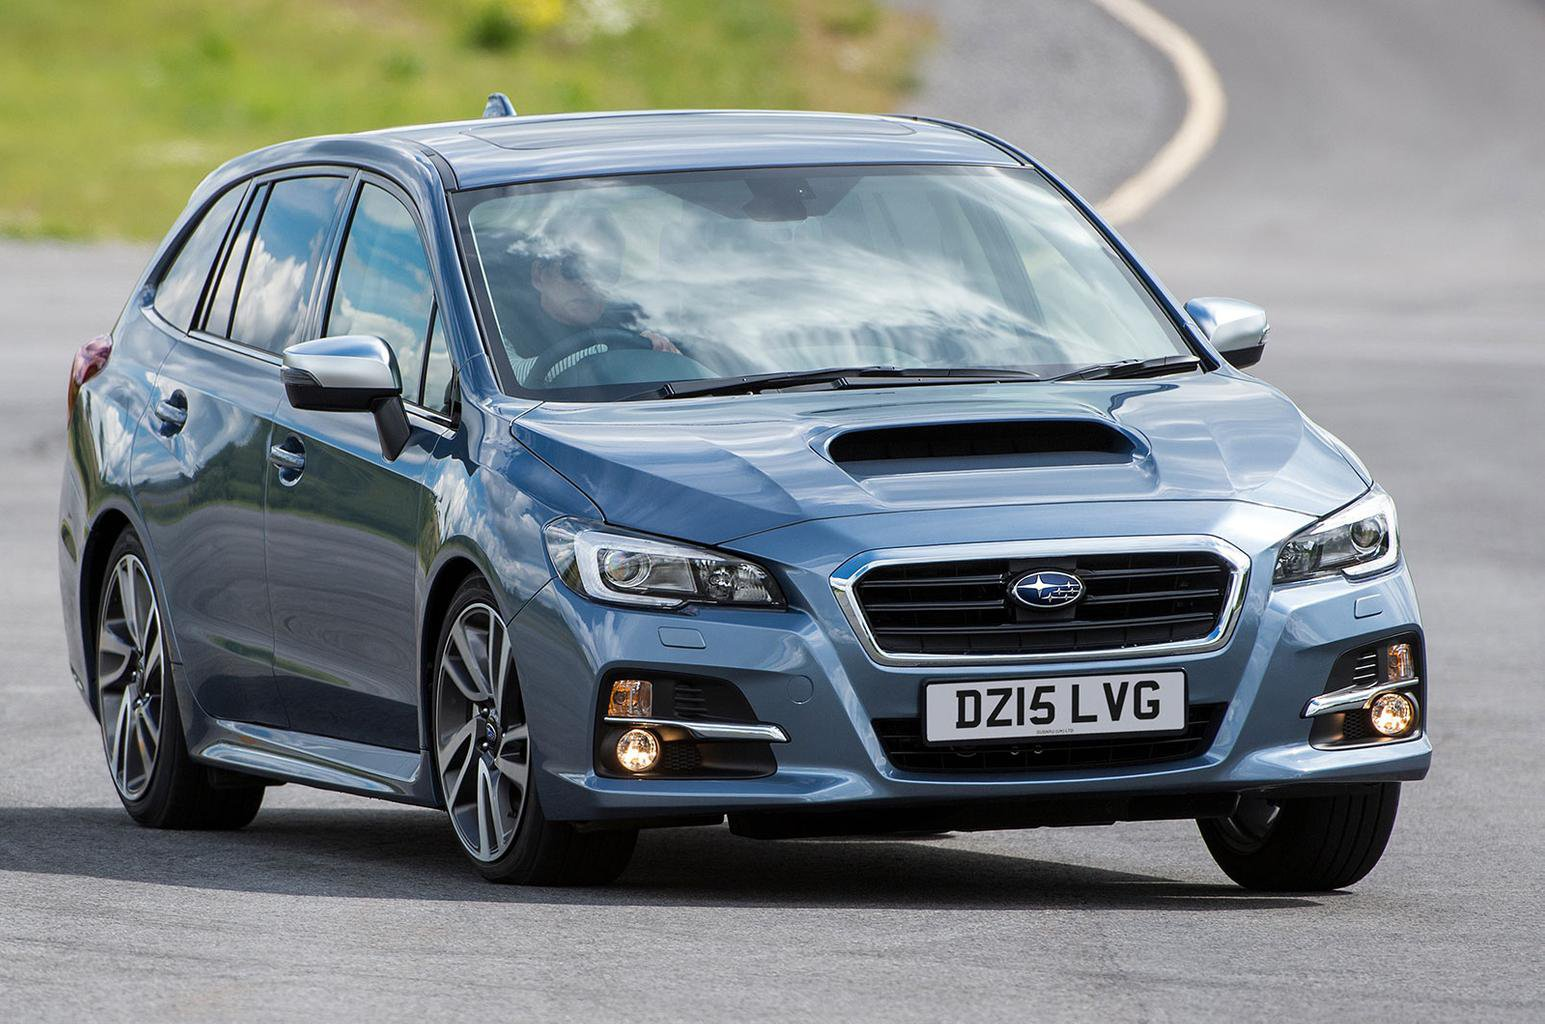 2015 Subaru Levorg priced at 27,495